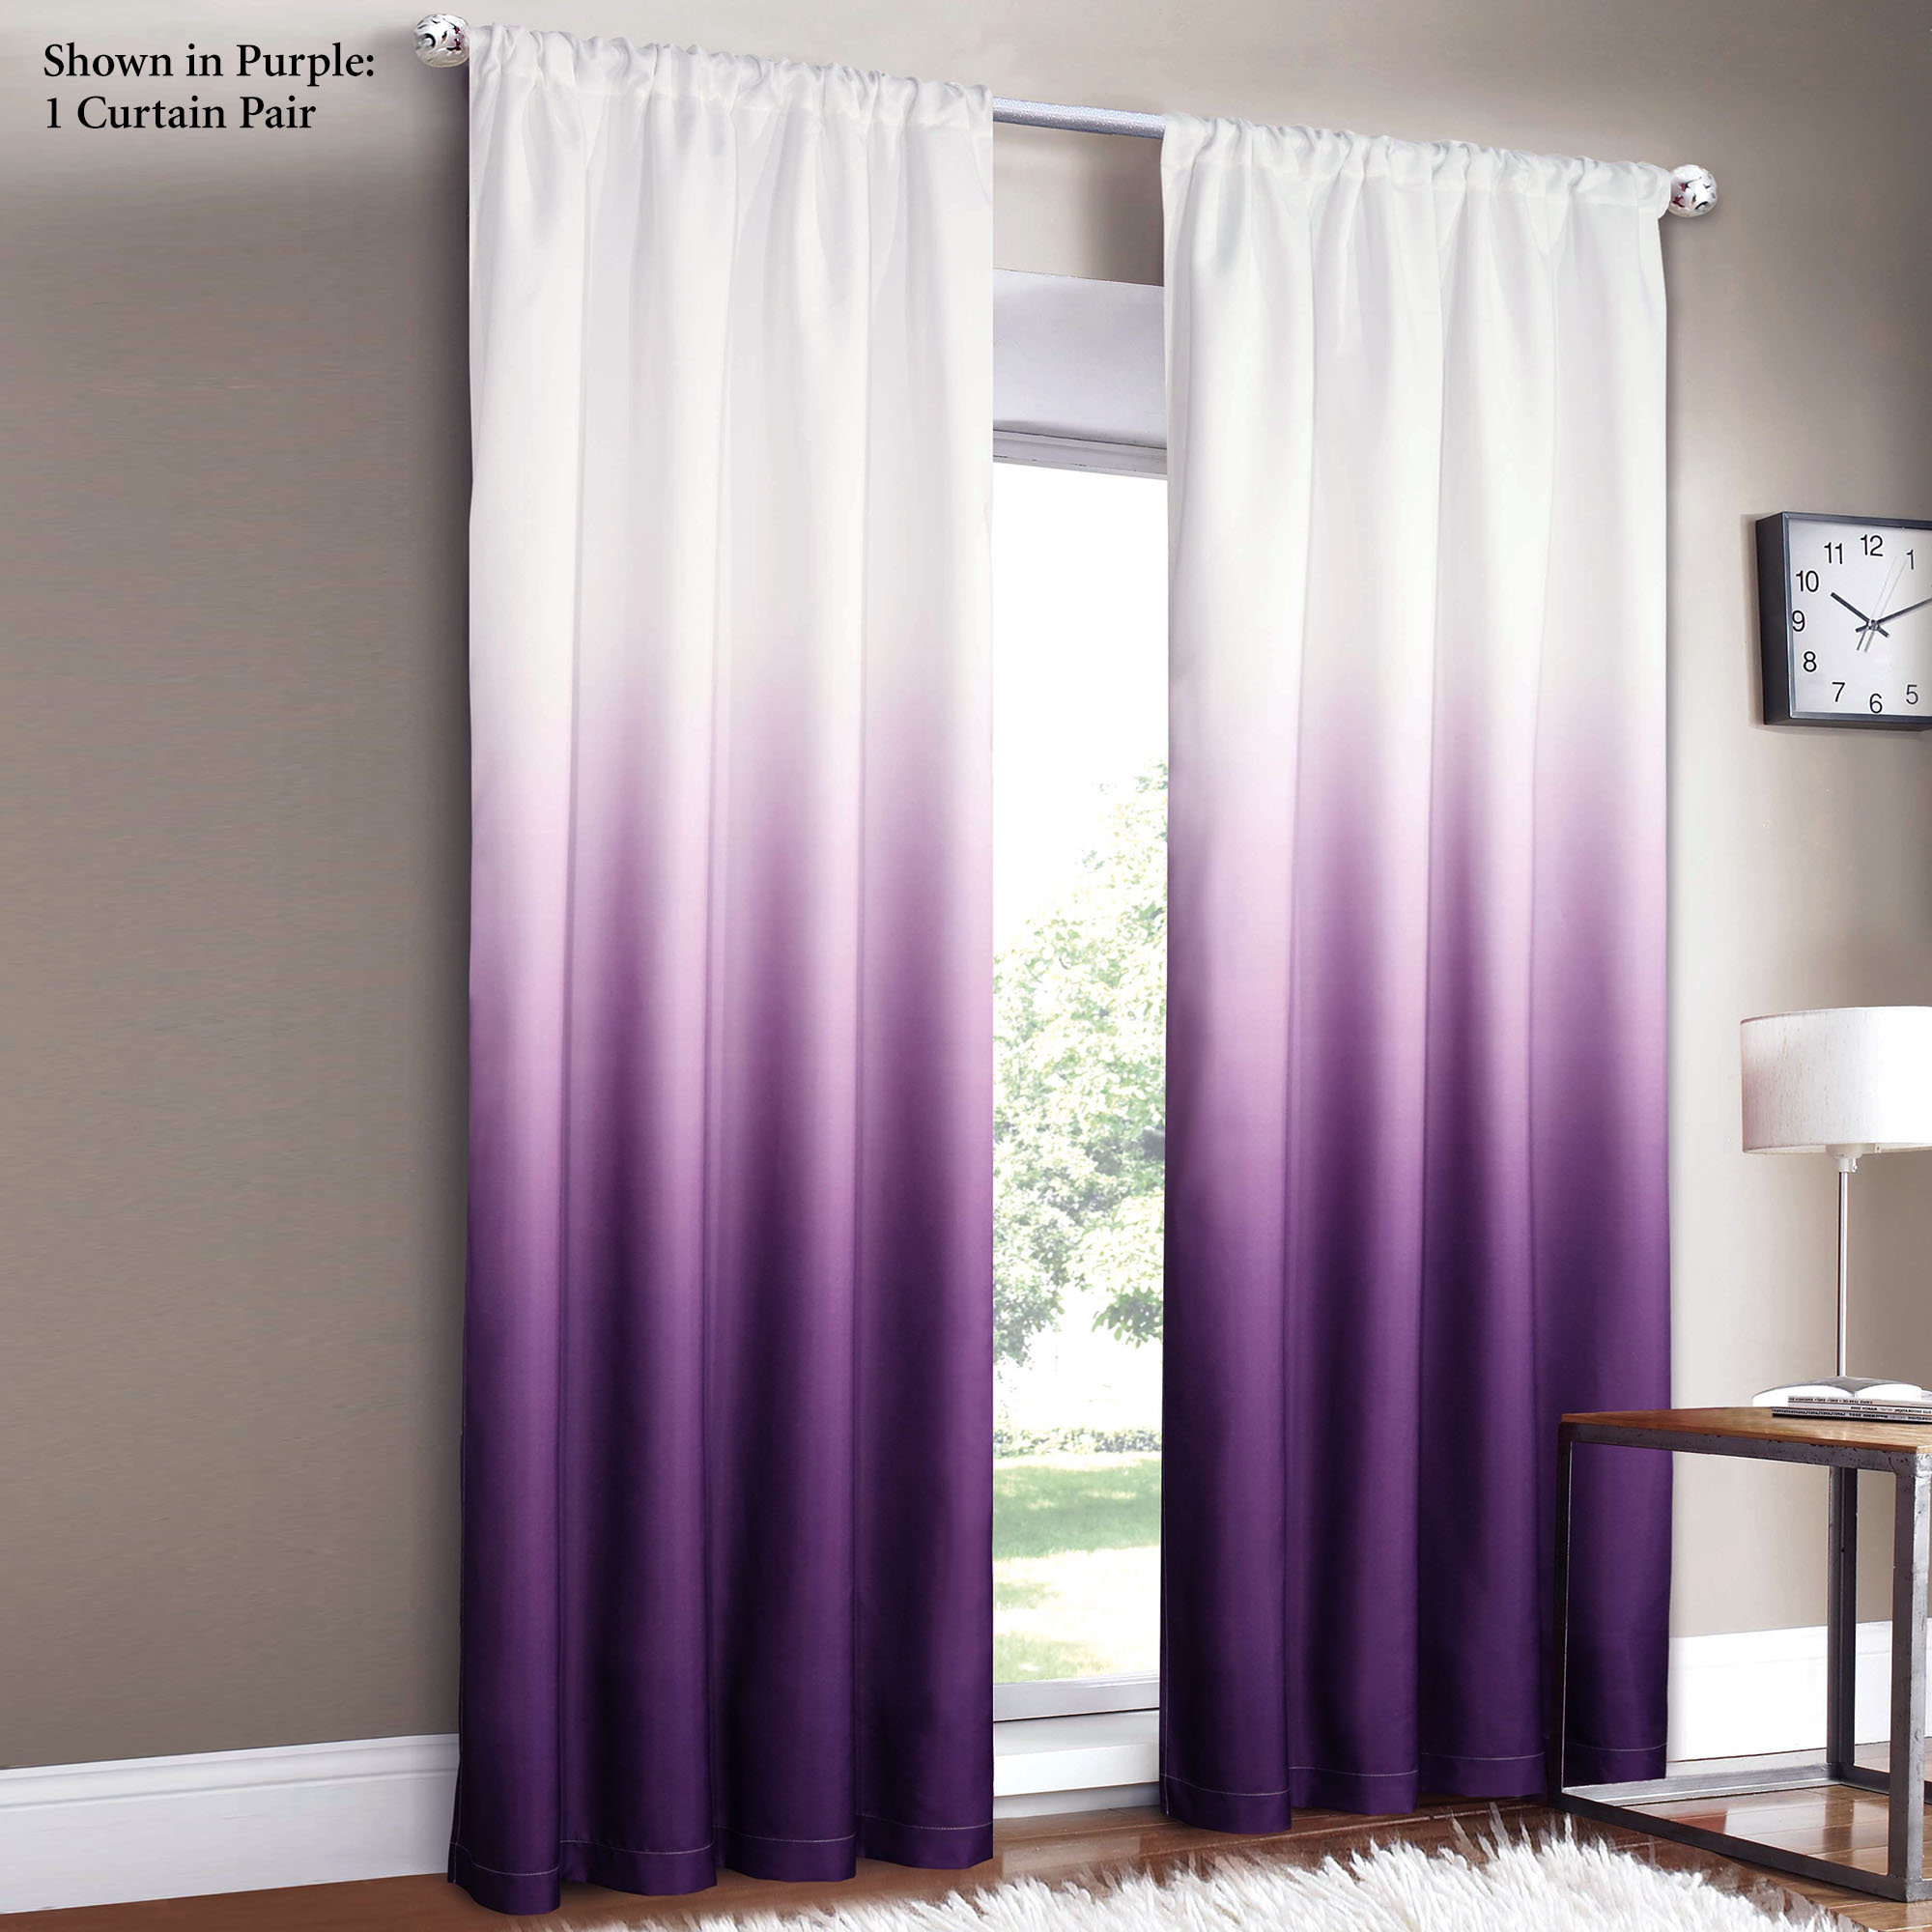 Awesome for black ideas. Curtains clipart bedroom curtain svg library download